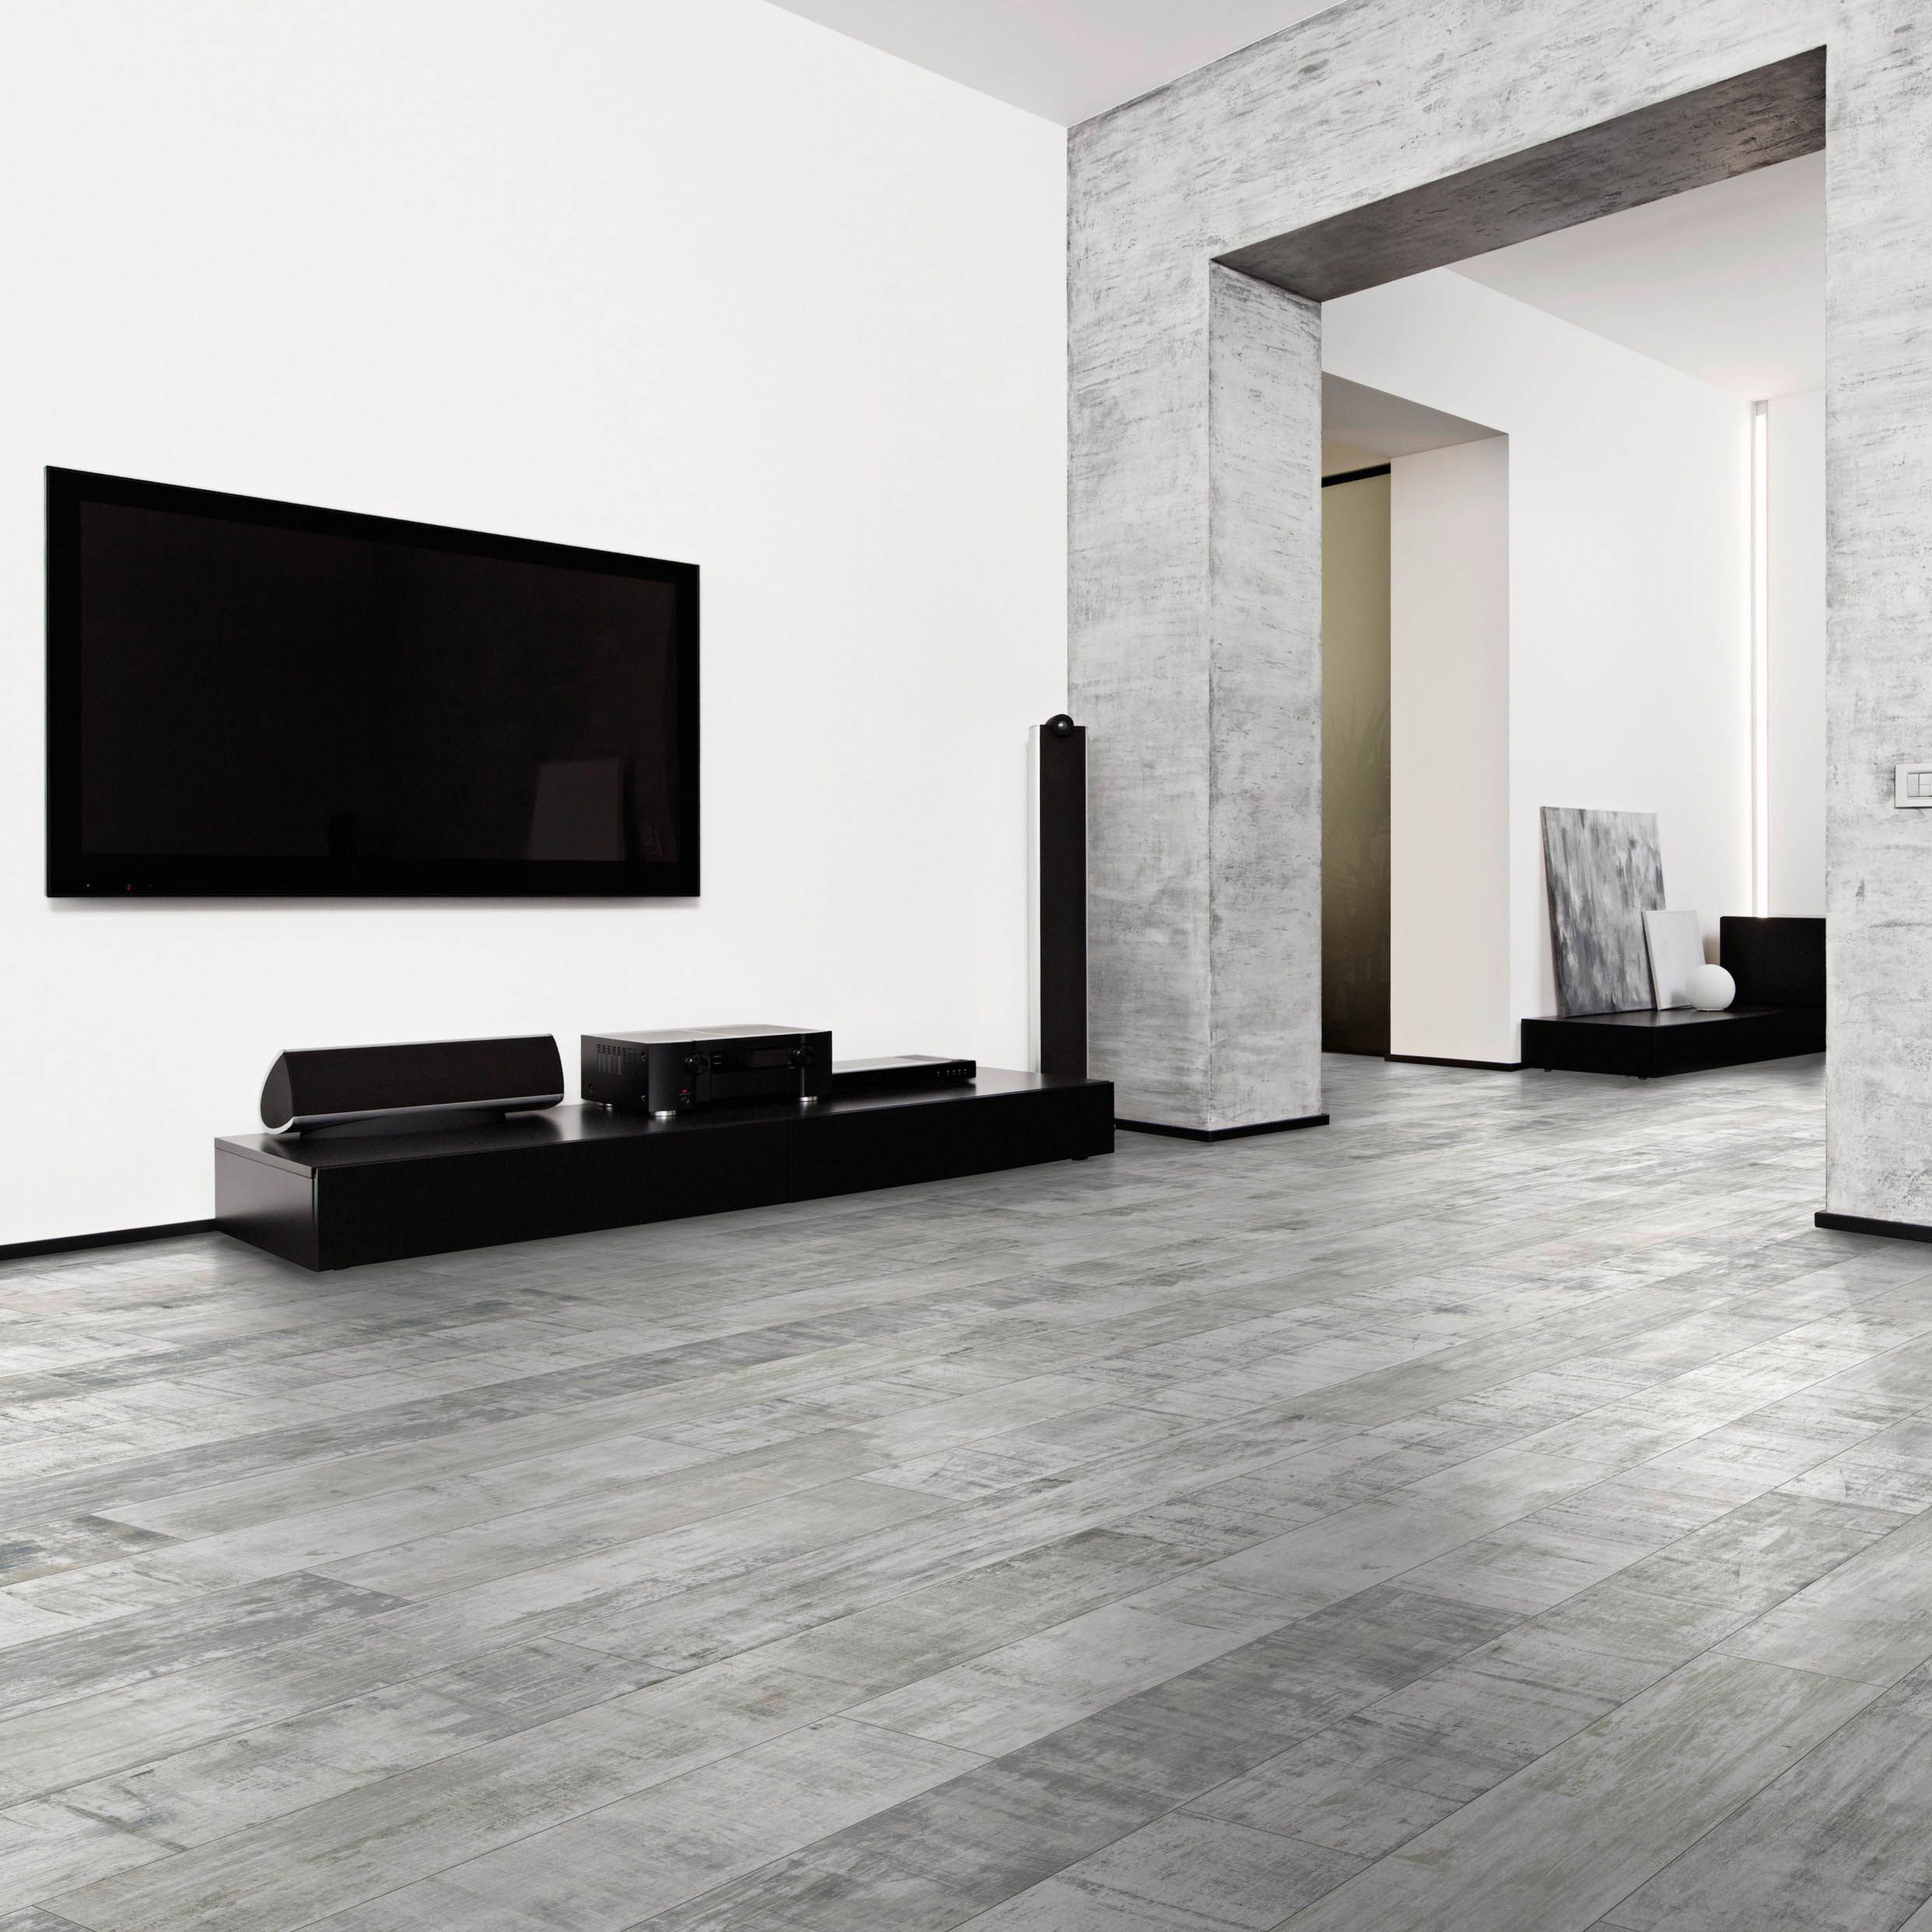 Belcanto Malibu Pine Effect Laminate Flooring 1.99 m Pack | Departments |  DIY at B&Q.